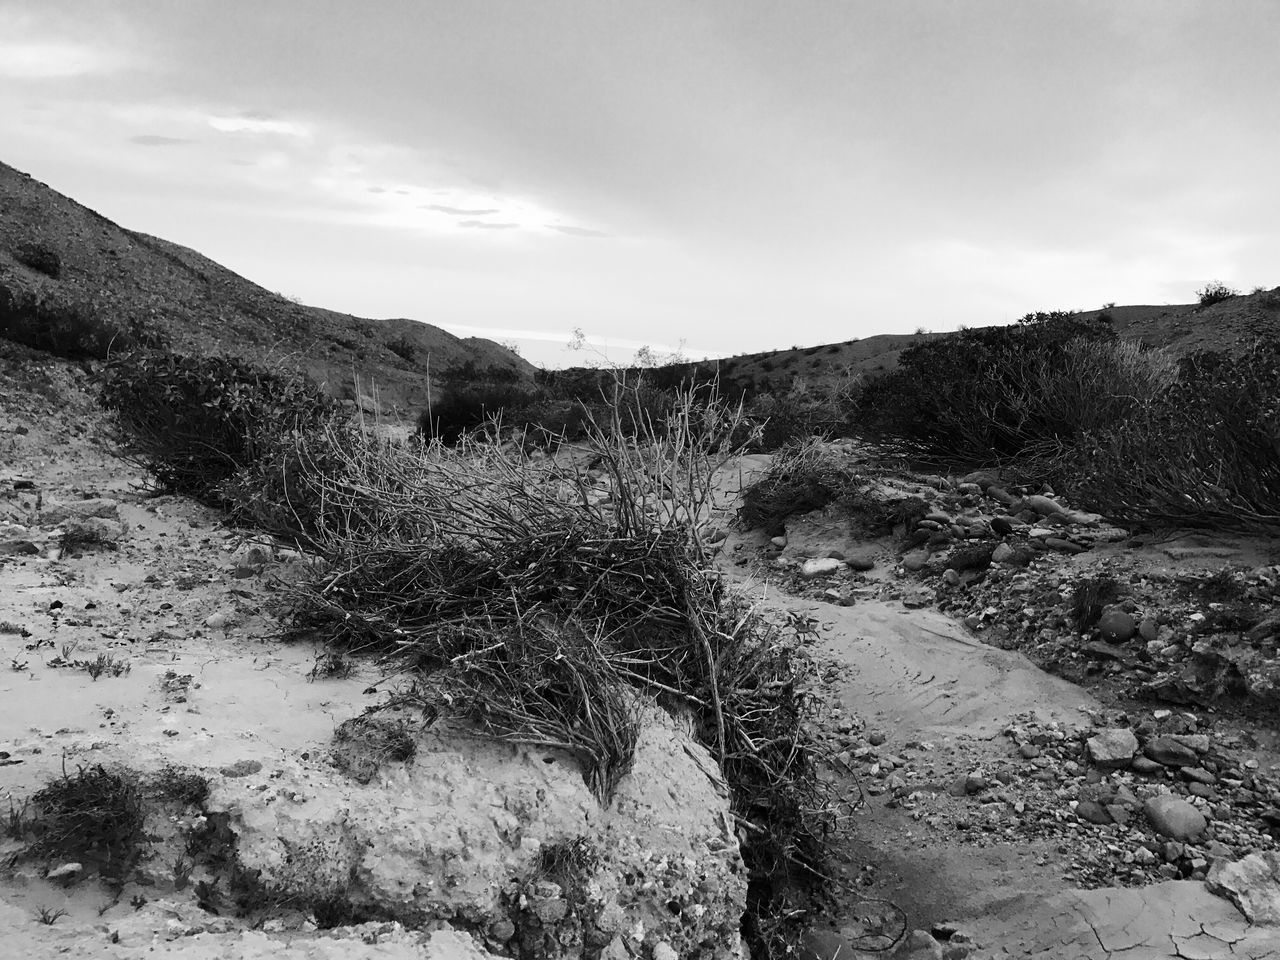 Nature Sky Tranquil Scene Outdoors Growth Landscape Non-urban Scene Scenics No People Day Beauty In Nature Black And White Photography Desert Photography Geological Landscape No Filter, No Edit, Just Photography